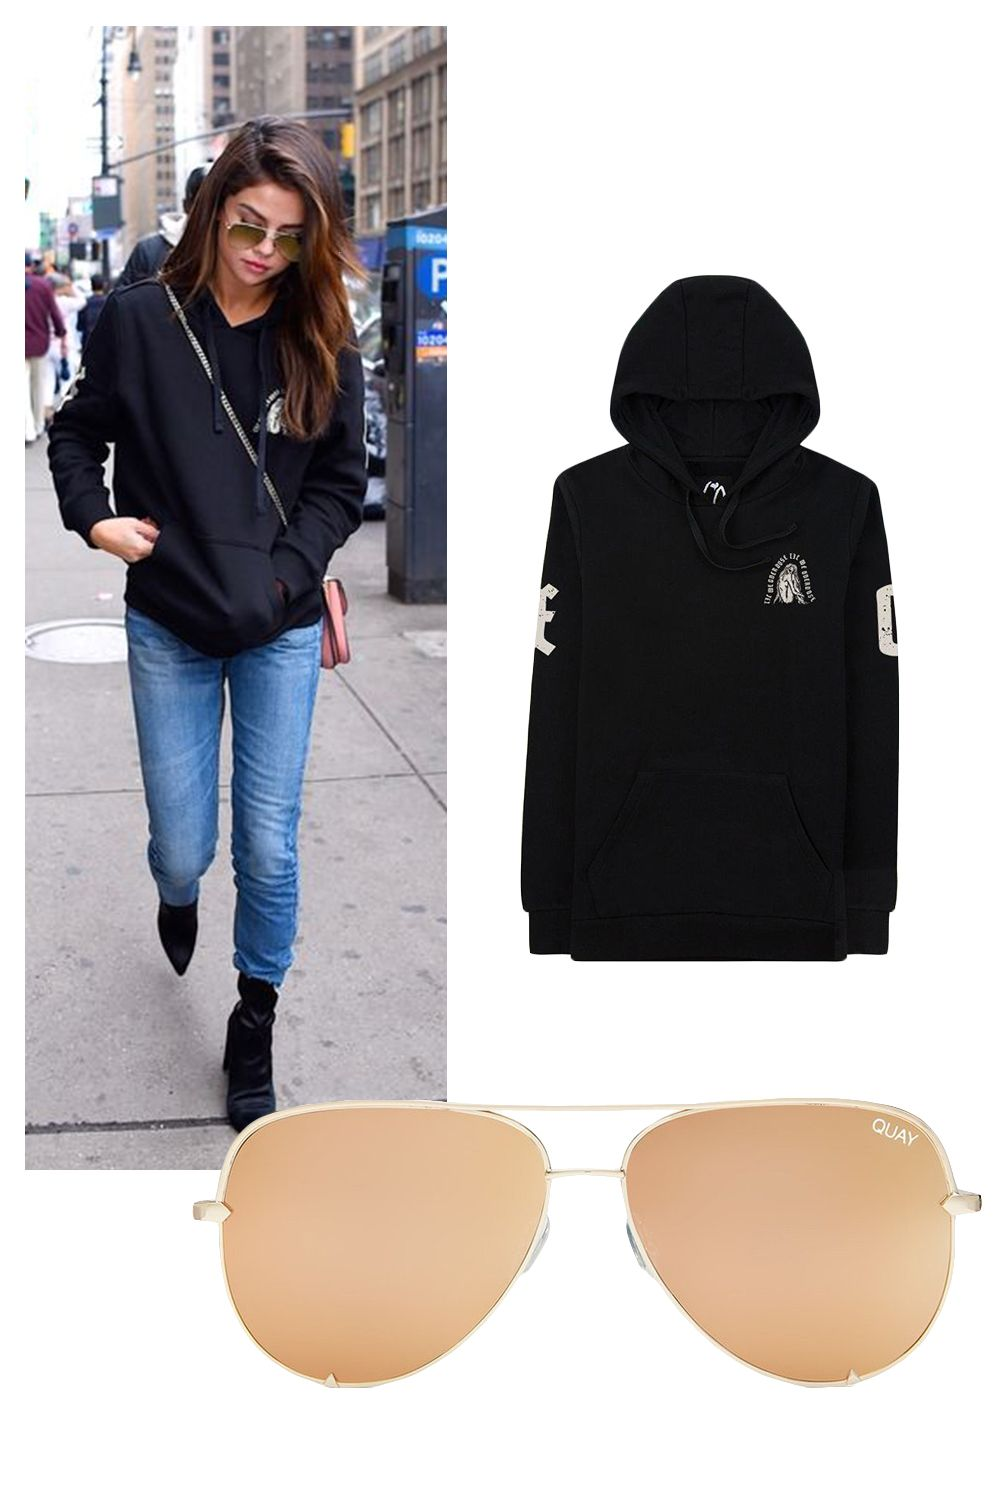 "<p>The Weekend Allure Fleece Pullover Hoodie, $78; <a href=""https://www.theweeknd.com/store/allure-hoodie"" target=""_blank"" data-tracking-id=""recirc-text-link"">theweeknd.com</a></p><p>Quay x Desi Perkins High Key Aviator Sunglasses, $65; <a href=""http://shop.nordstrom.com/s/quay-australia-x-desi-perkins-high-key-62mm-aviator-sunglasses/4438883?origin=keywordsearch-personalizedsort&fashioncolor=SILVER%2F%20SILVER"" target=""_blank"" data-tracking-id=""recirc-text-link"">nordstrom.com</a></p>"